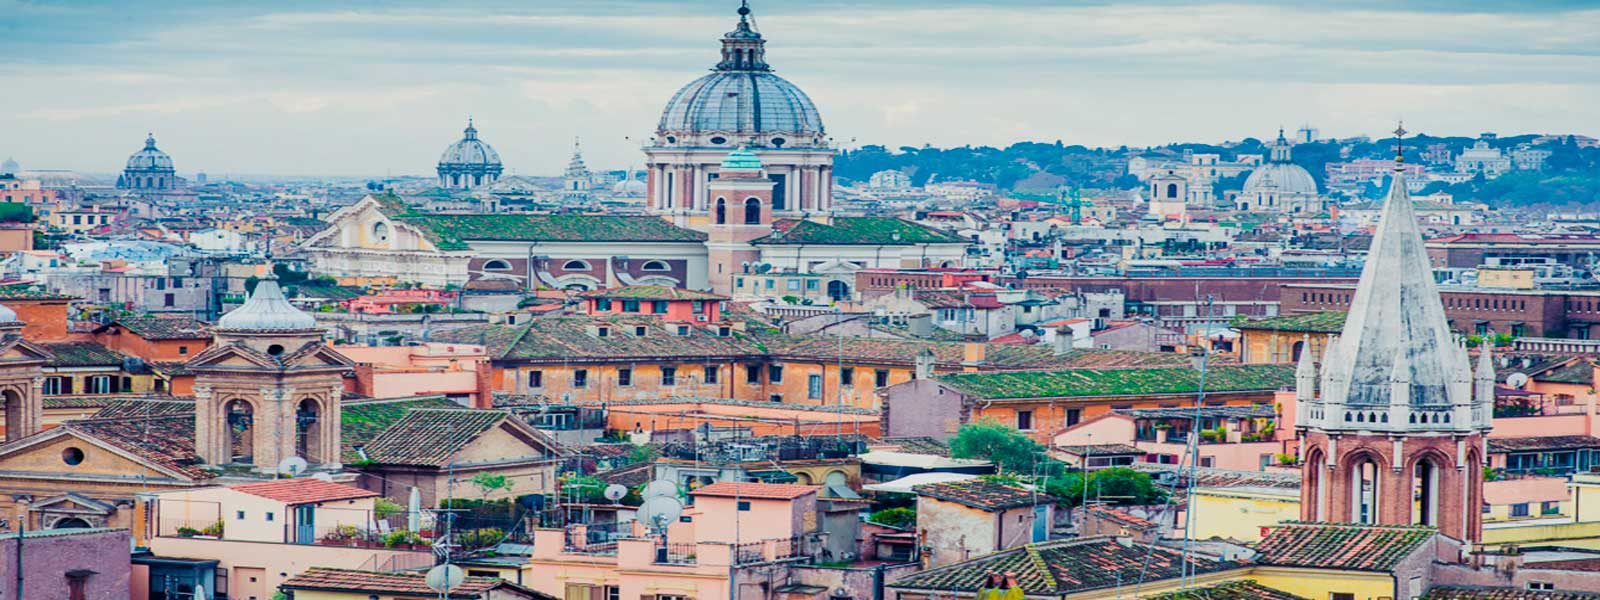 Sightseeing tour from Civitavecchia to Rome